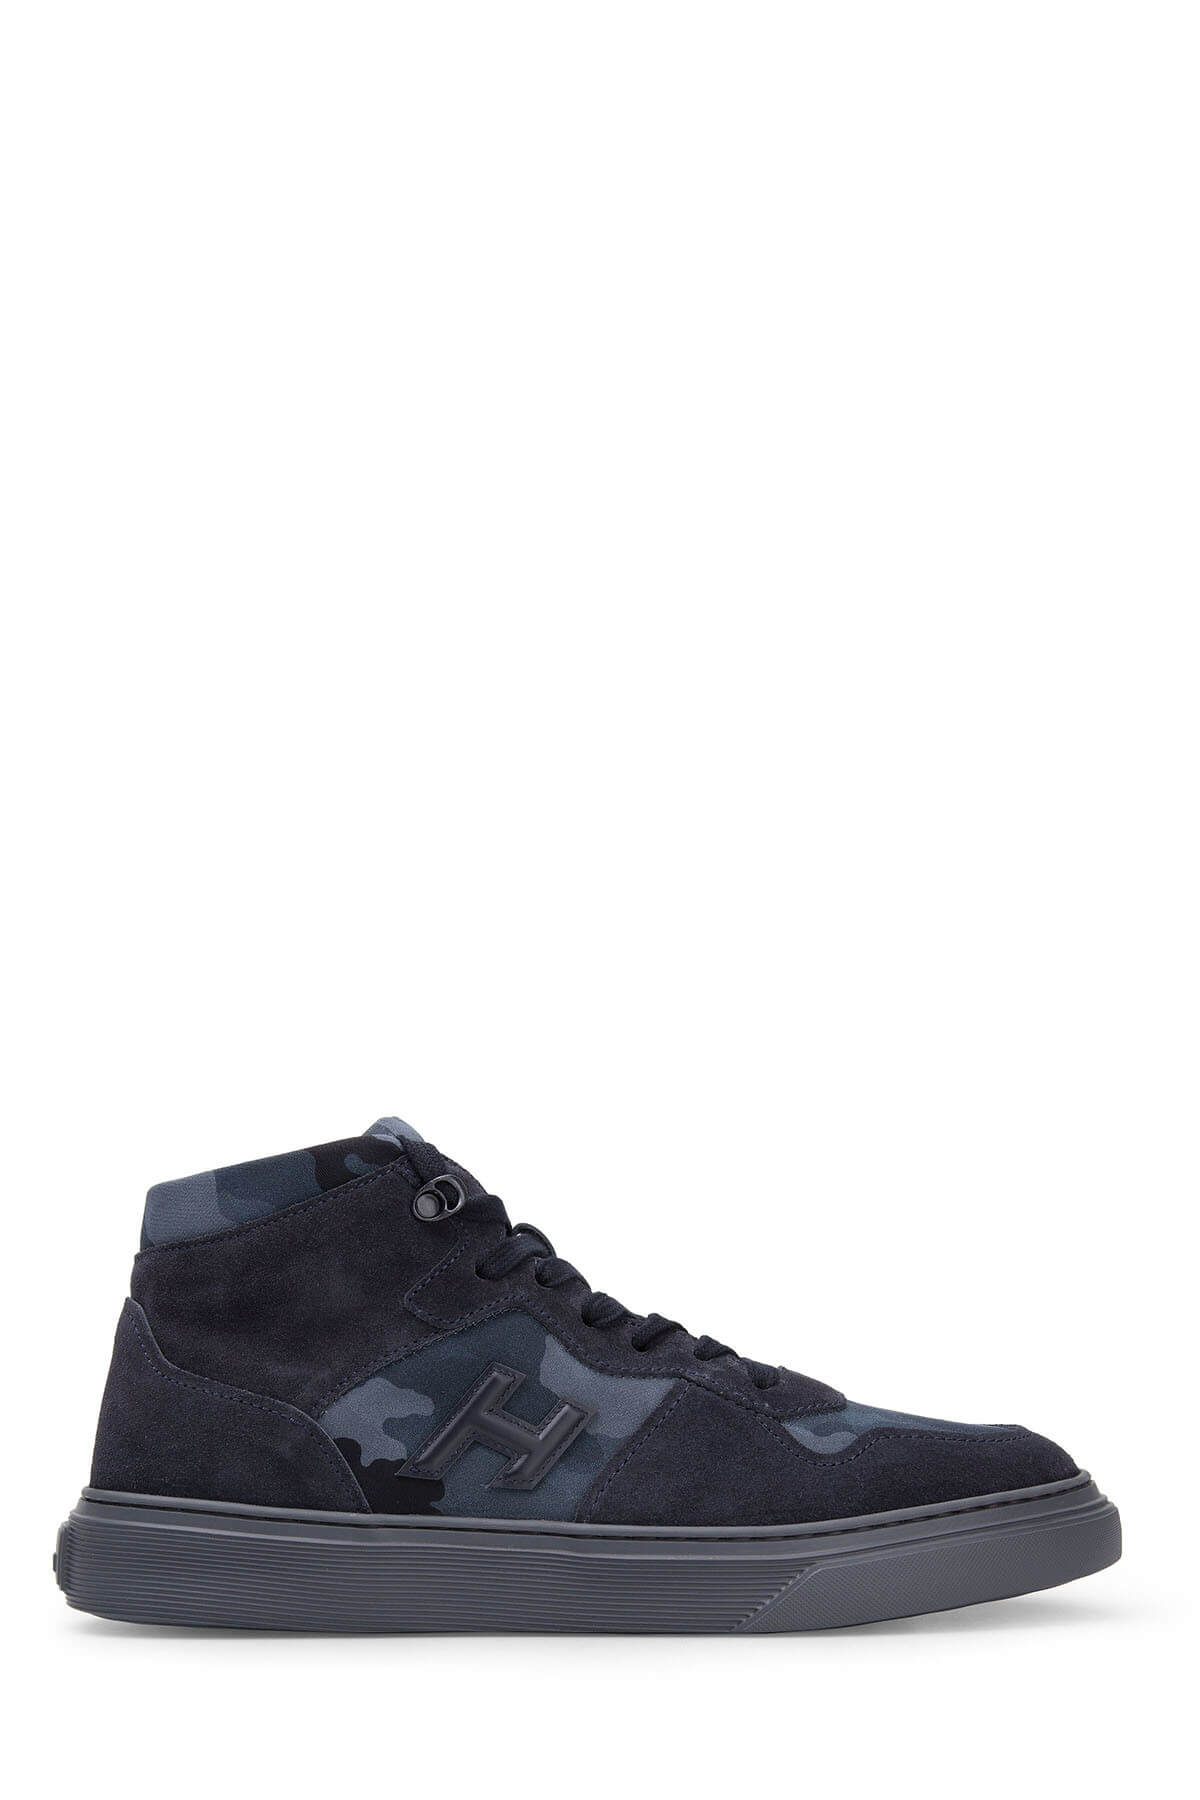 HOGAN Men's Dark Navy Blue Boots & Bootie Hxm3650Am70Jgd6Eet HXM3650AM70JGD6EET